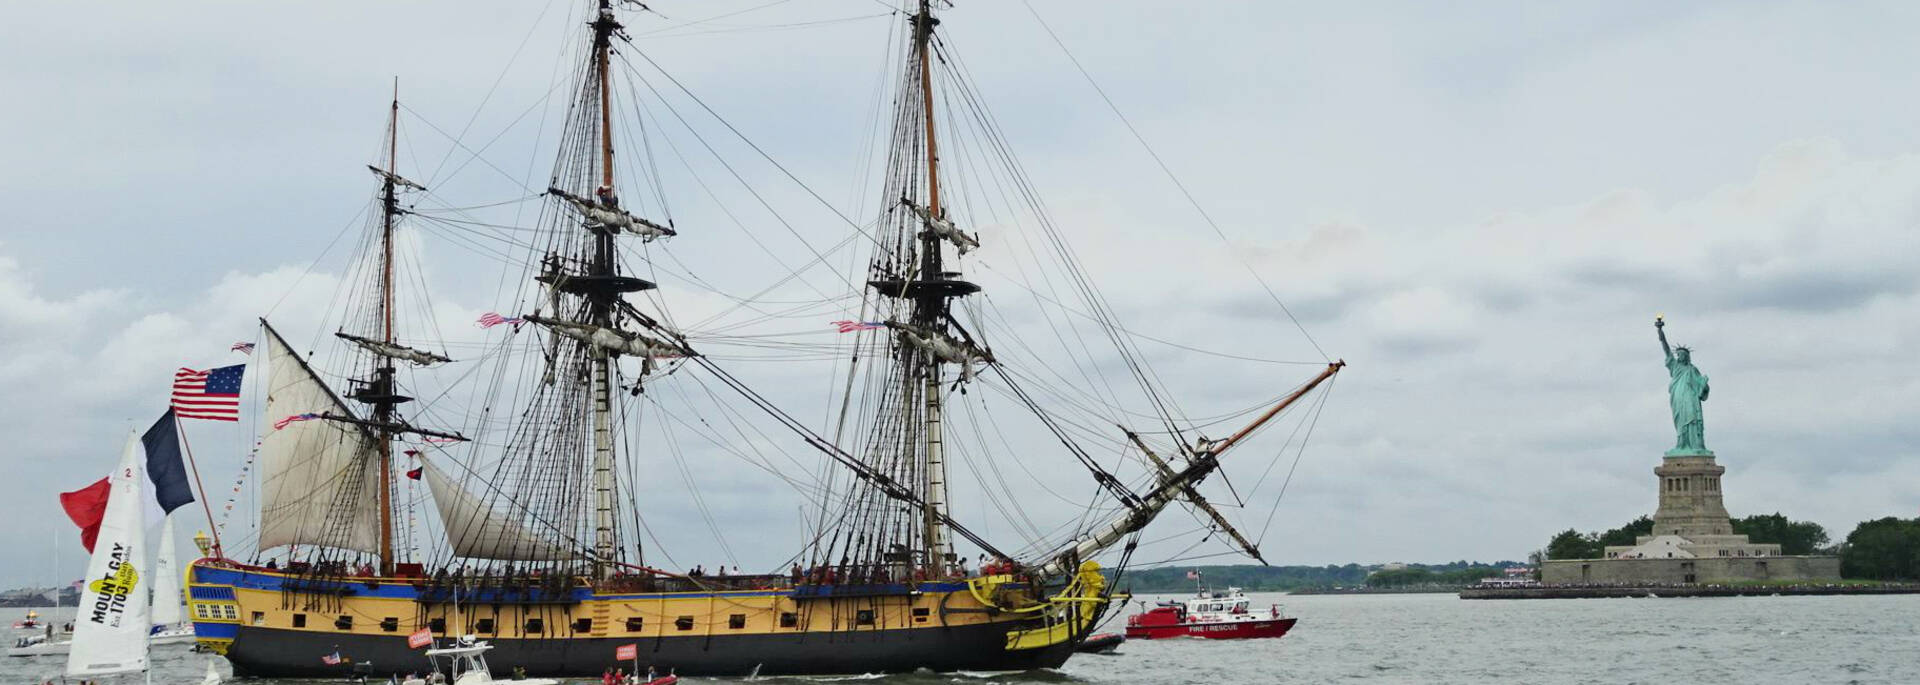 The Hermione in front of the Statue of Liberty - © Office de tourisme Rochefort Océan